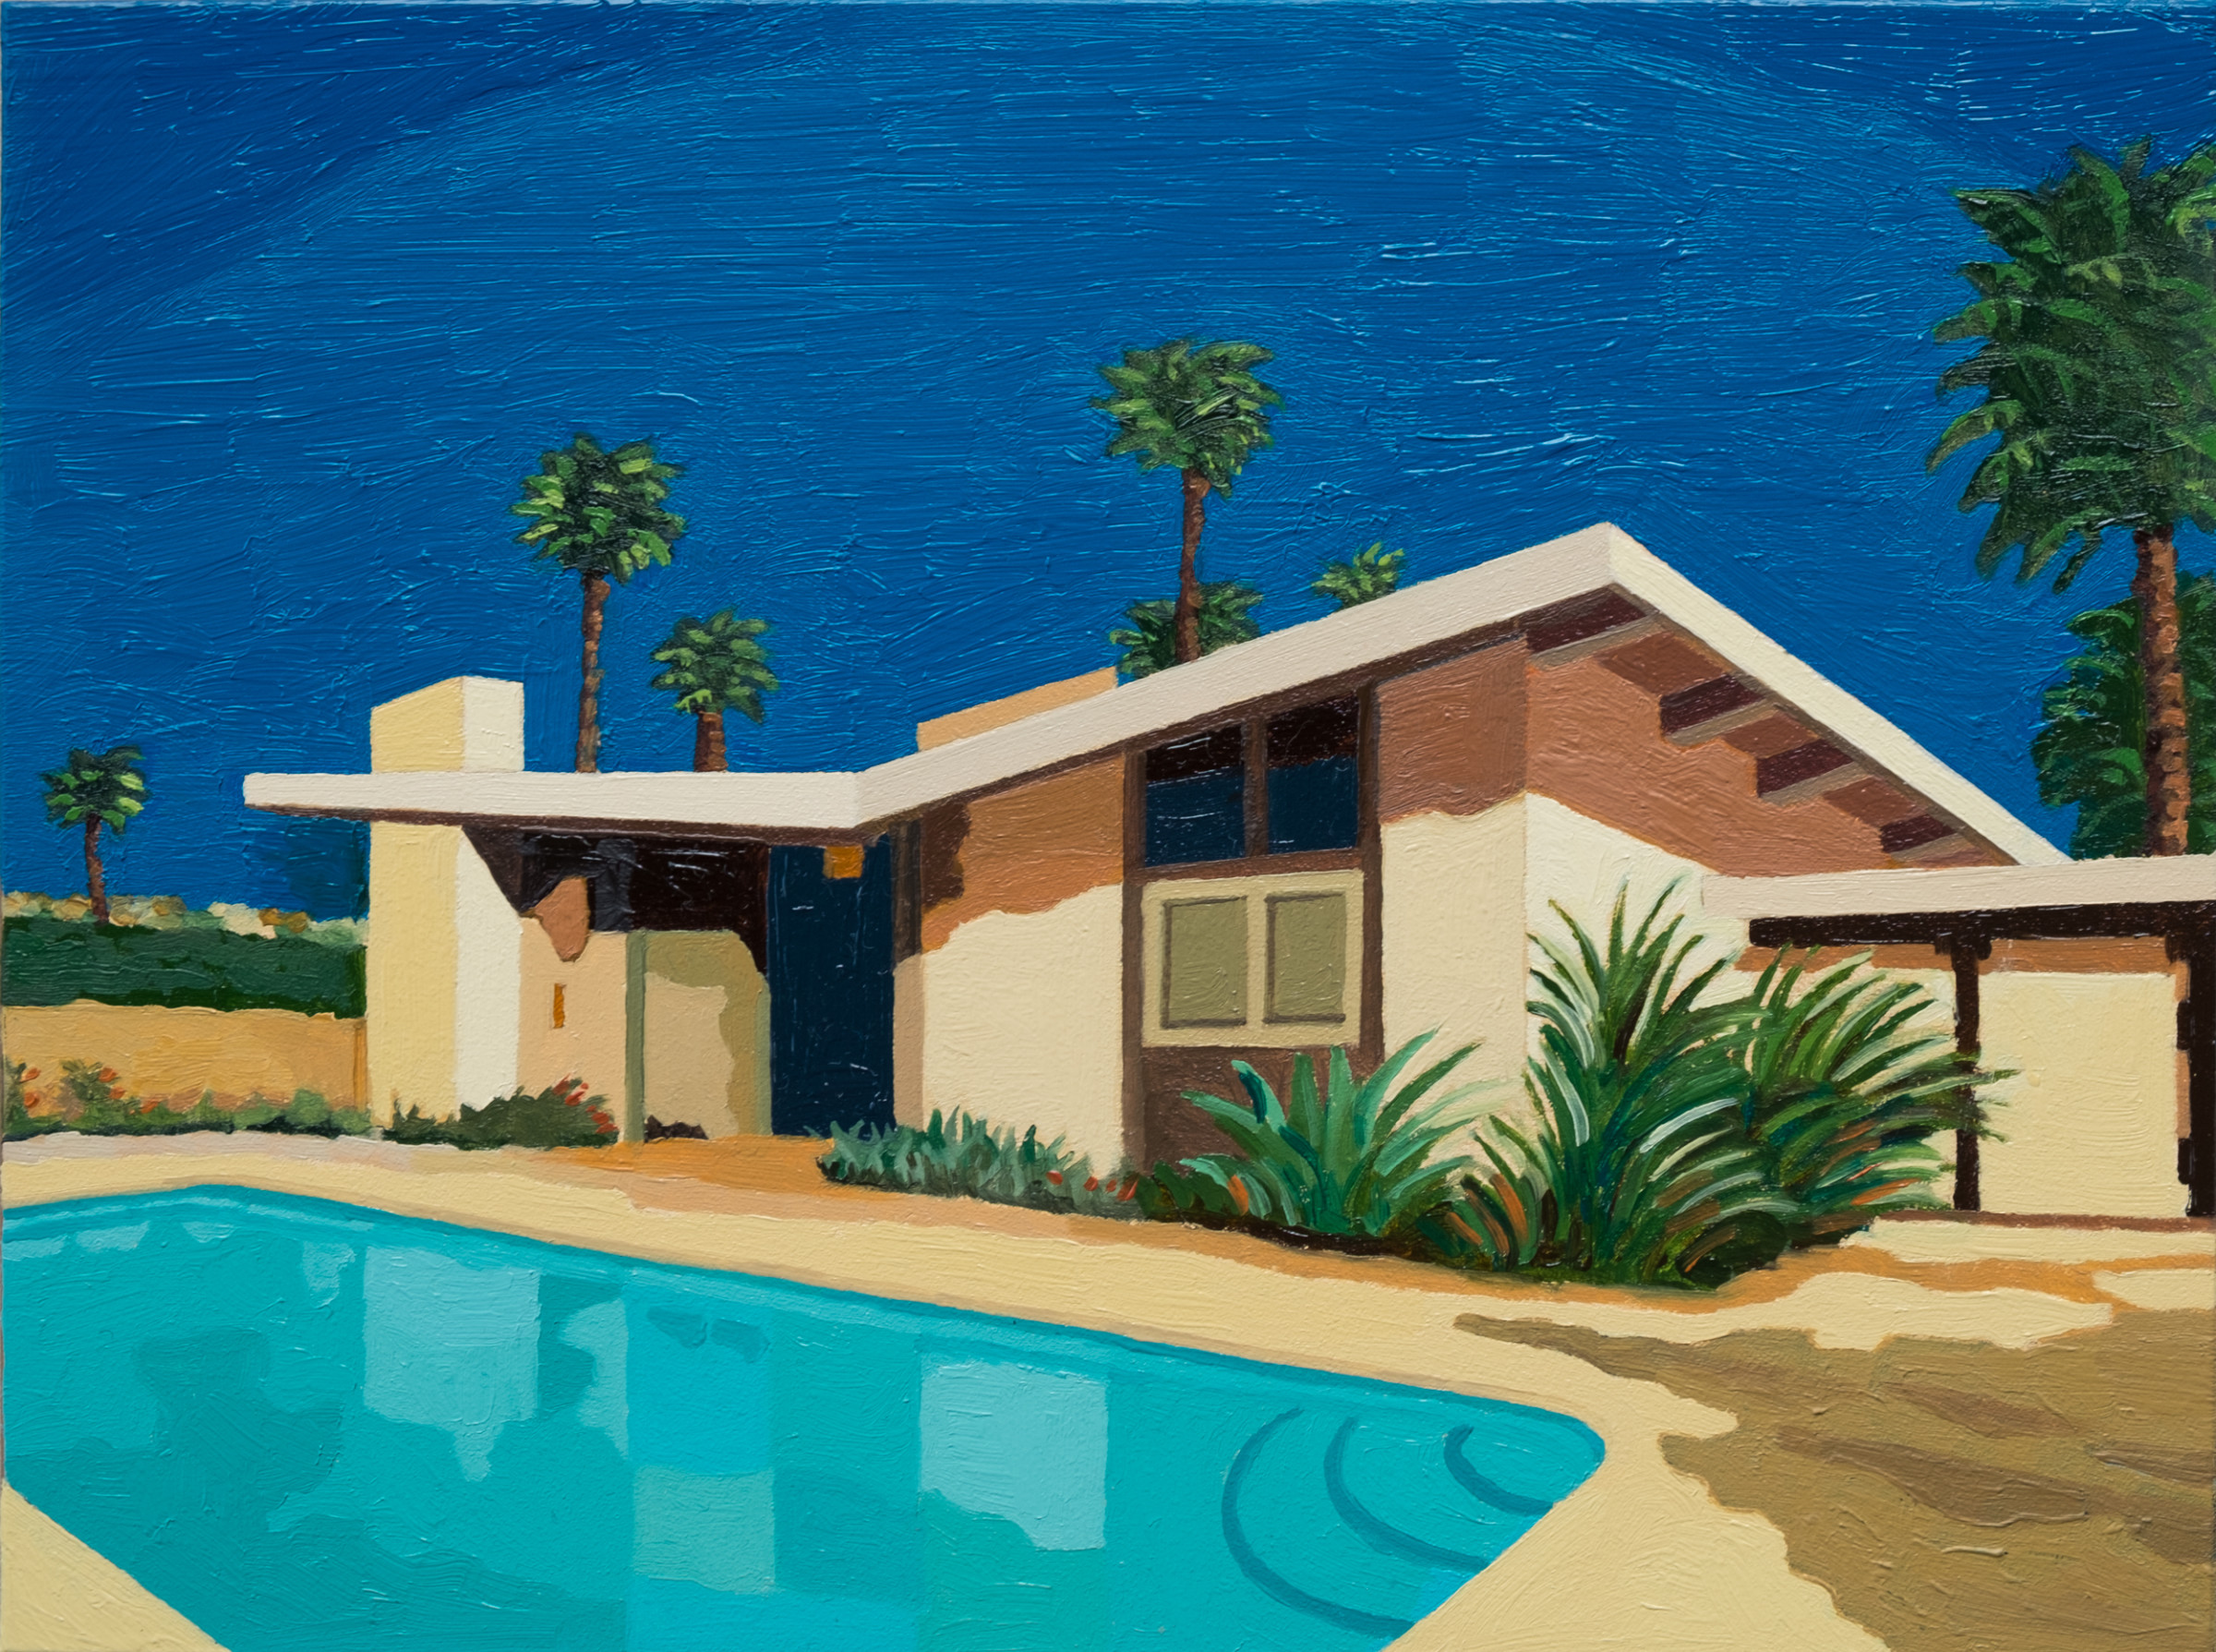 "<span class=""link fancybox-details-link""><a href=""/exhibitions/42/works/artworks2788/"">View Detail Page</a></span><div class=""artist""><strong>Andy Burgess</strong></div><div class=""title""><em>Palm Springs Ranch House II</em>, 2016</div><div class=""signed_and_dated"">Signed verso in ink</div><div class=""medium"">Oil on Panel</div><div class=""dimensions"">15.2 x 20.3 cm<br>6 x 8 in.</div>"